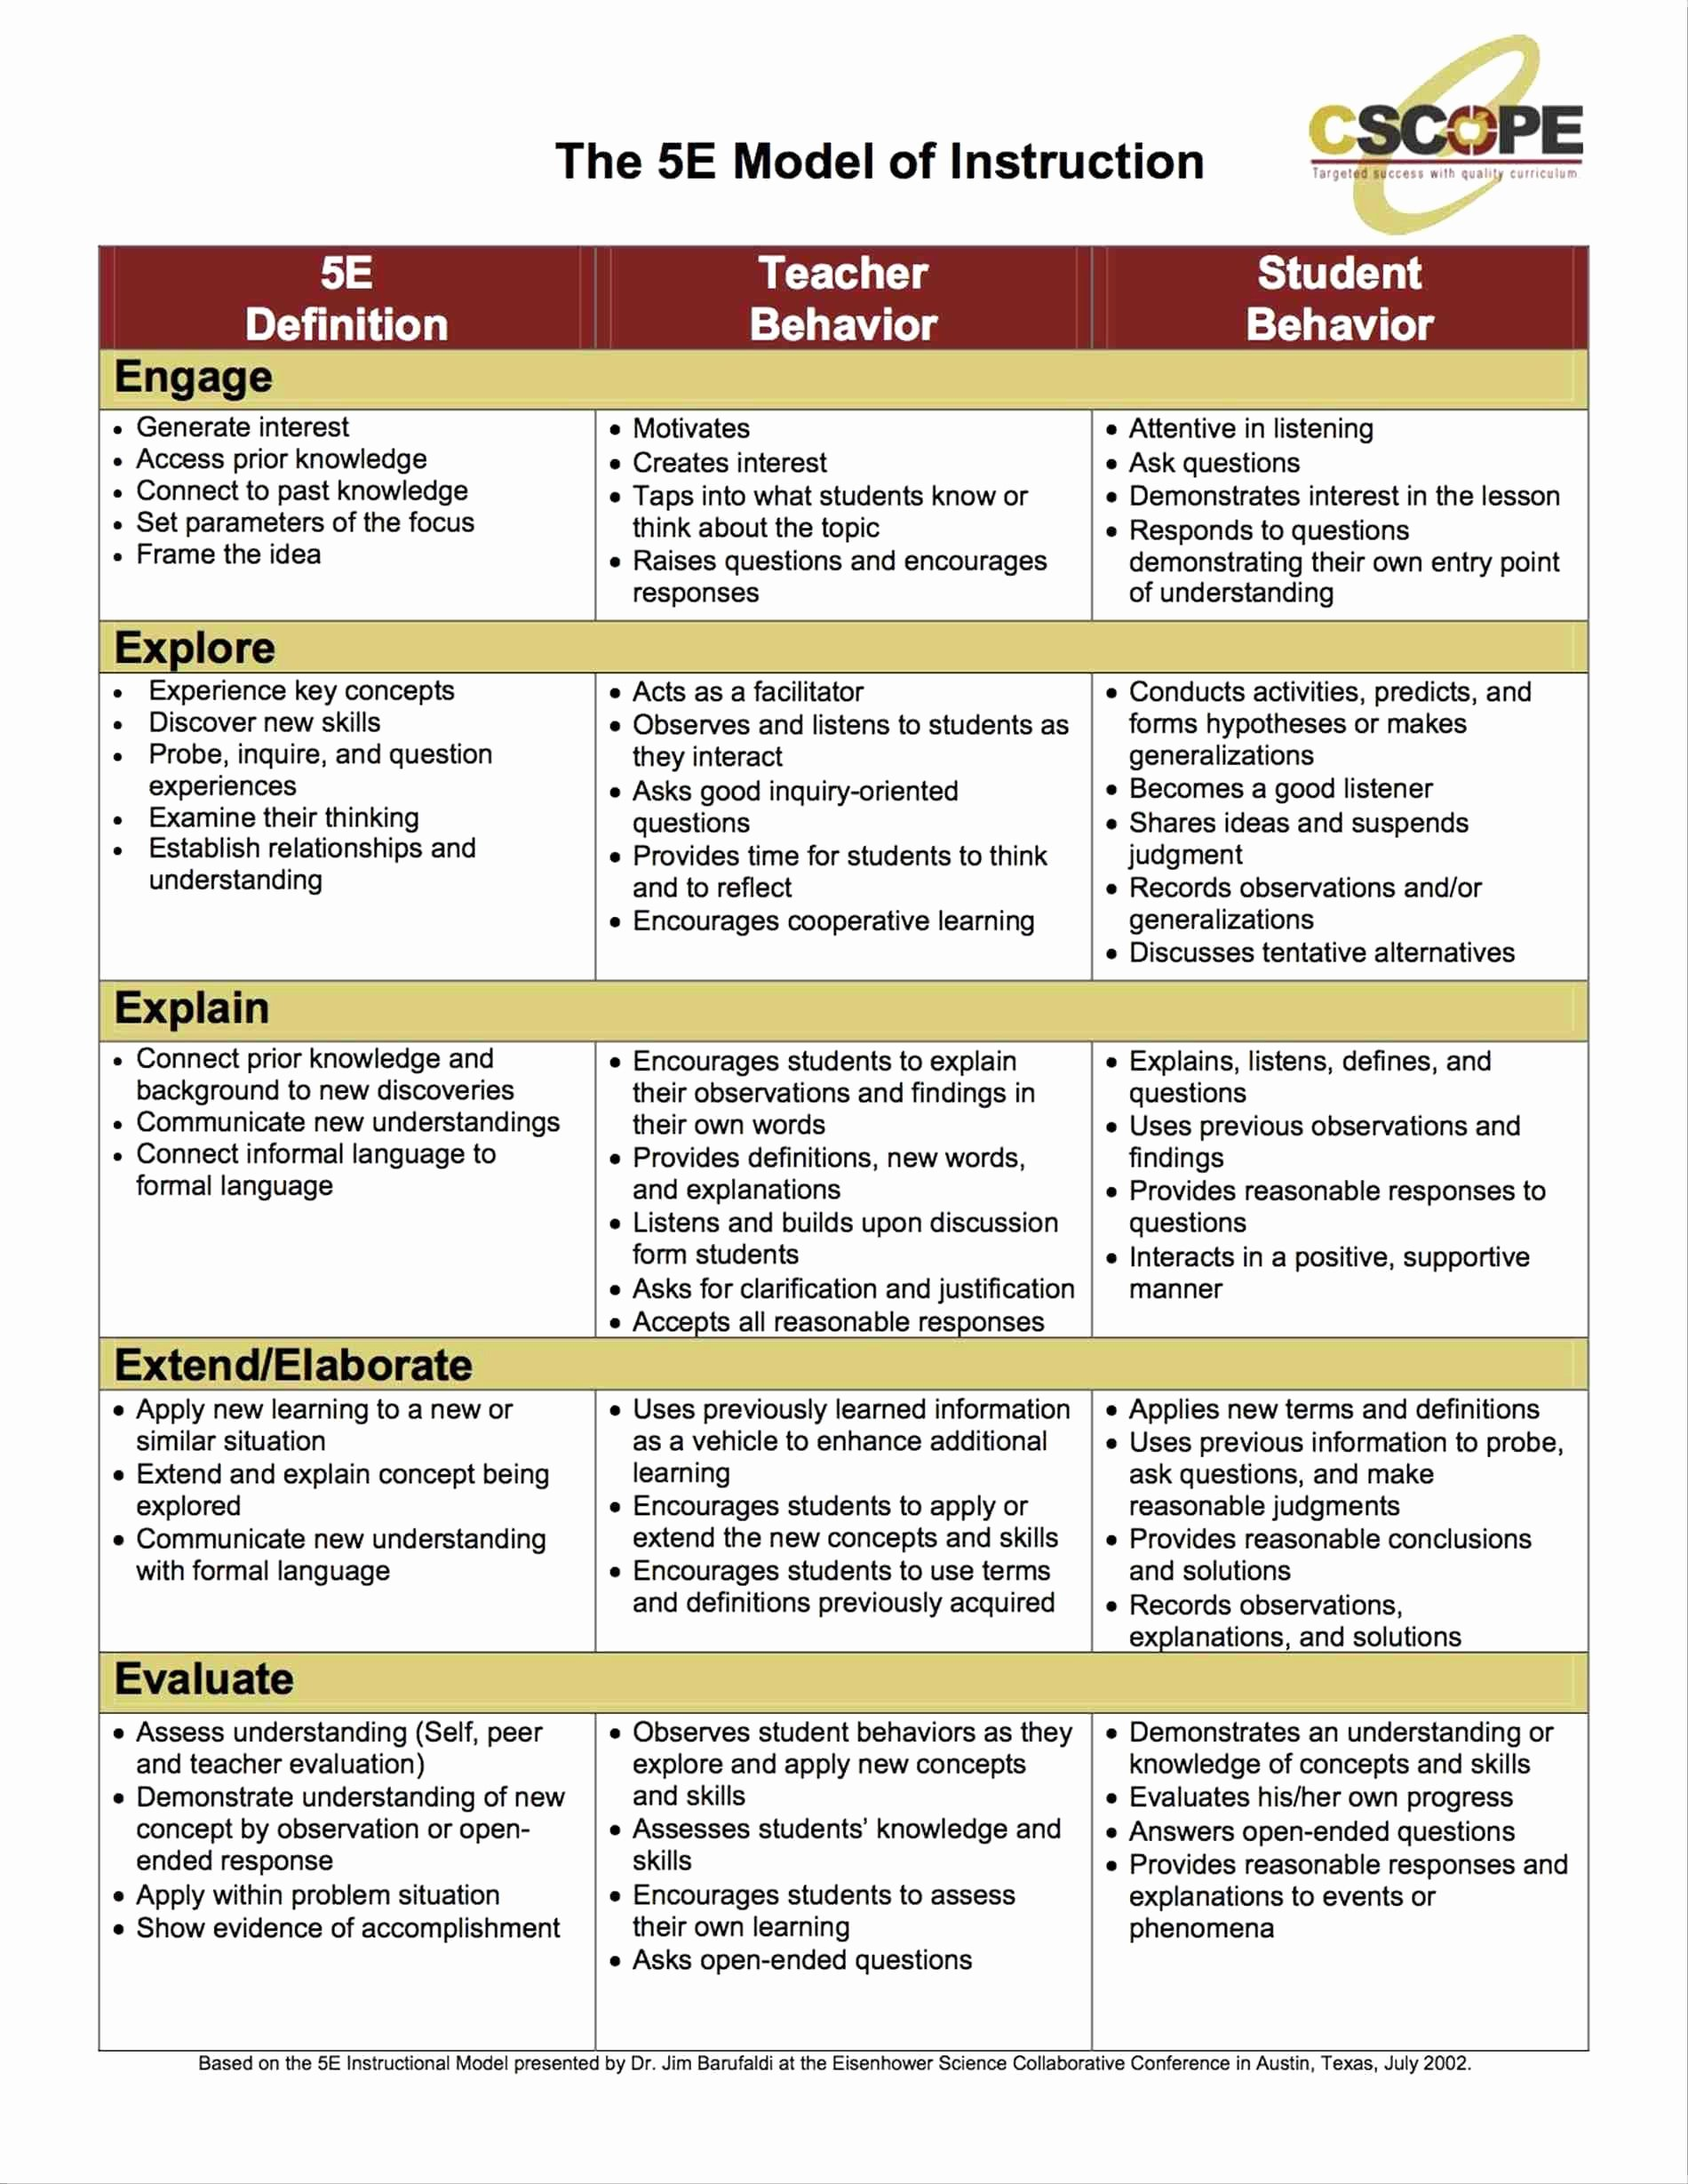 7 Step Lesson Plan Lovely 7 Step Lesson Plan Template Unique top Result 50 Luxury 5e Learning – Learning